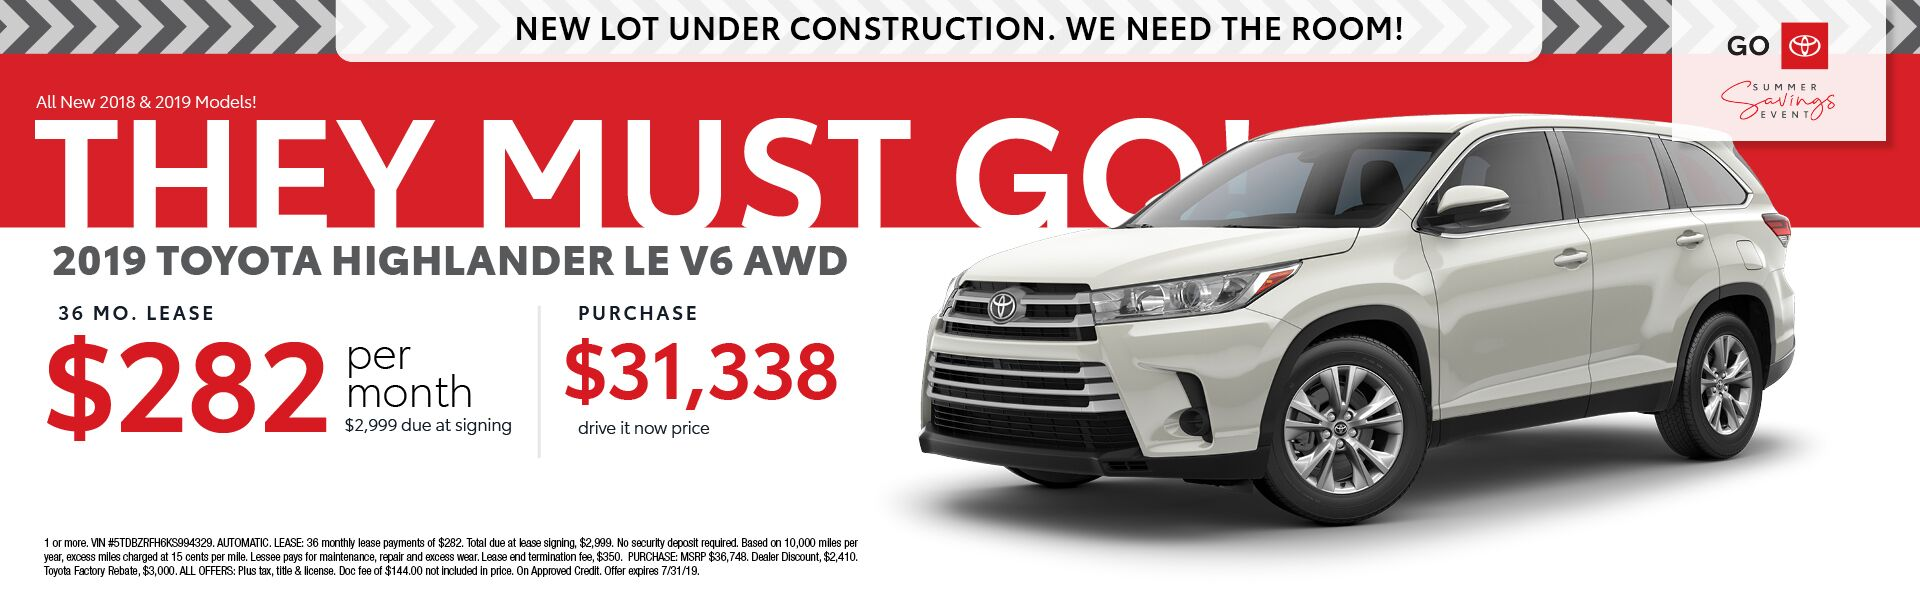 2019 Toyota Highlander LE V6 AWD Lease for 36 months $282 per month with $2,999 down - Purchase for $31,338